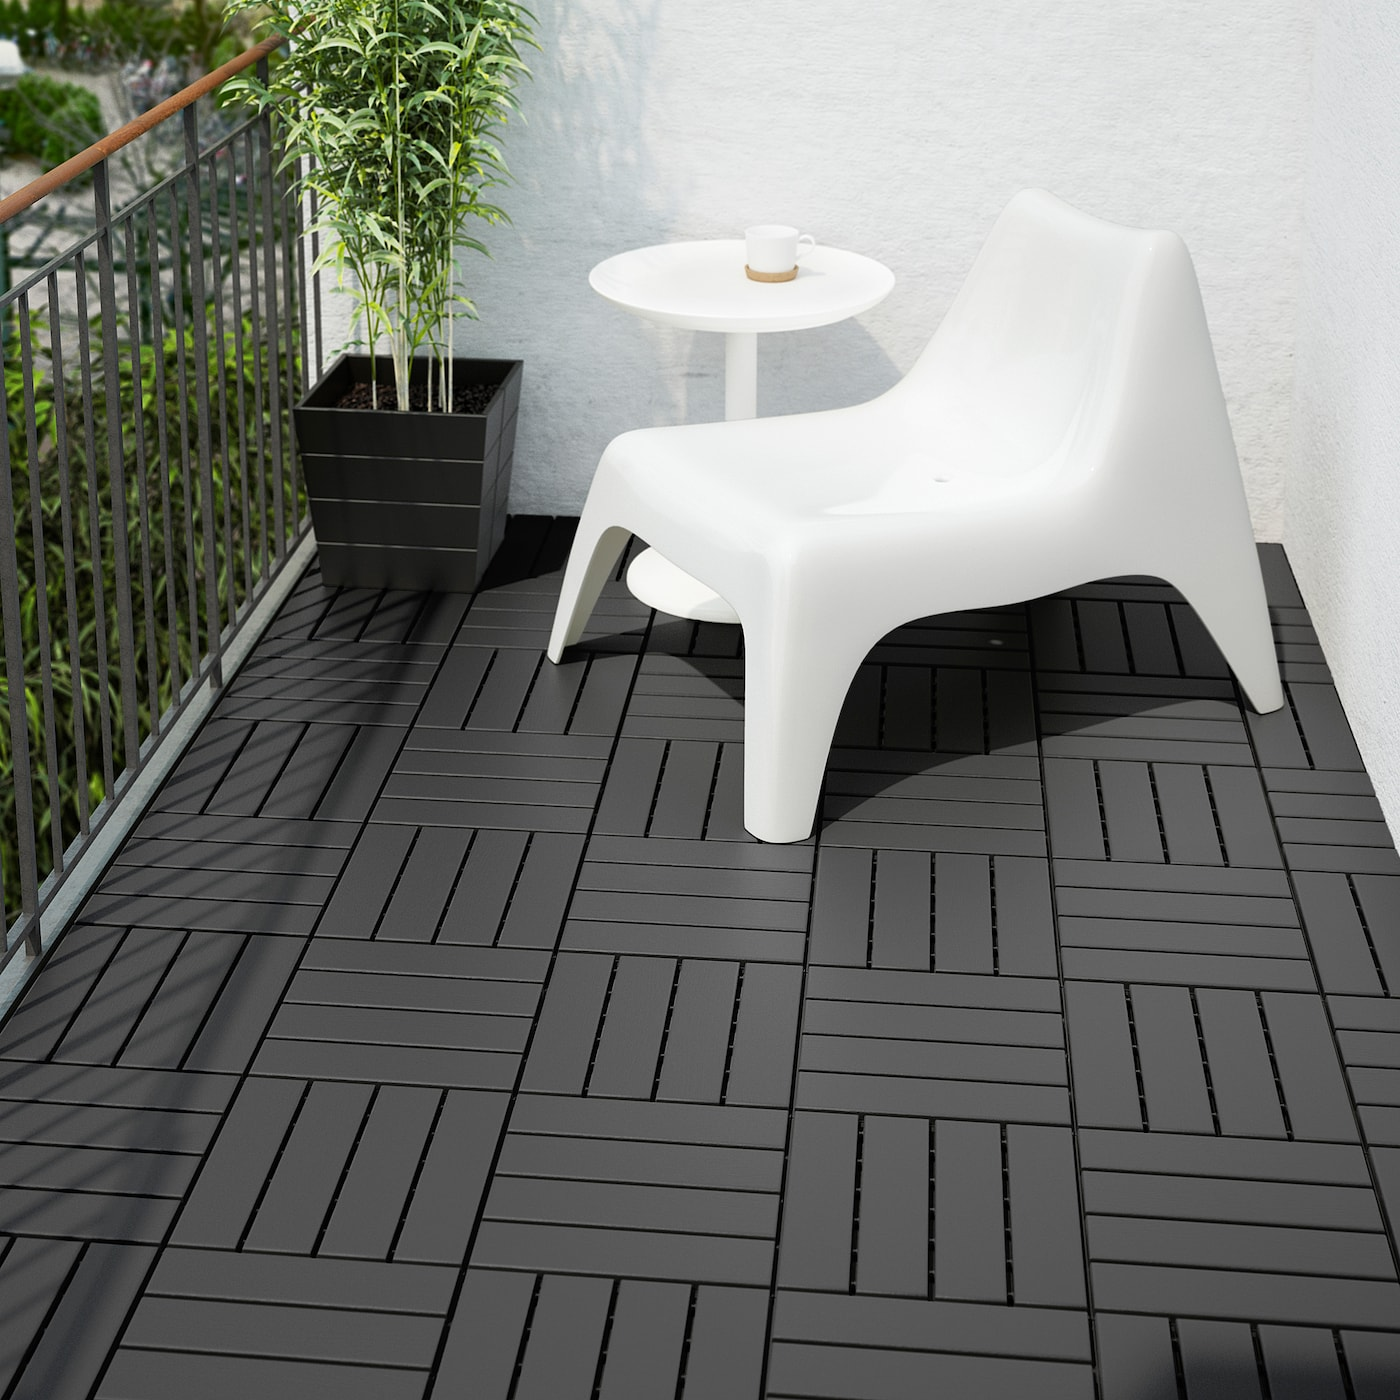 Ikea RUNNEN Decking, outdoor, dark gray9 sq feet (0.81 m²)